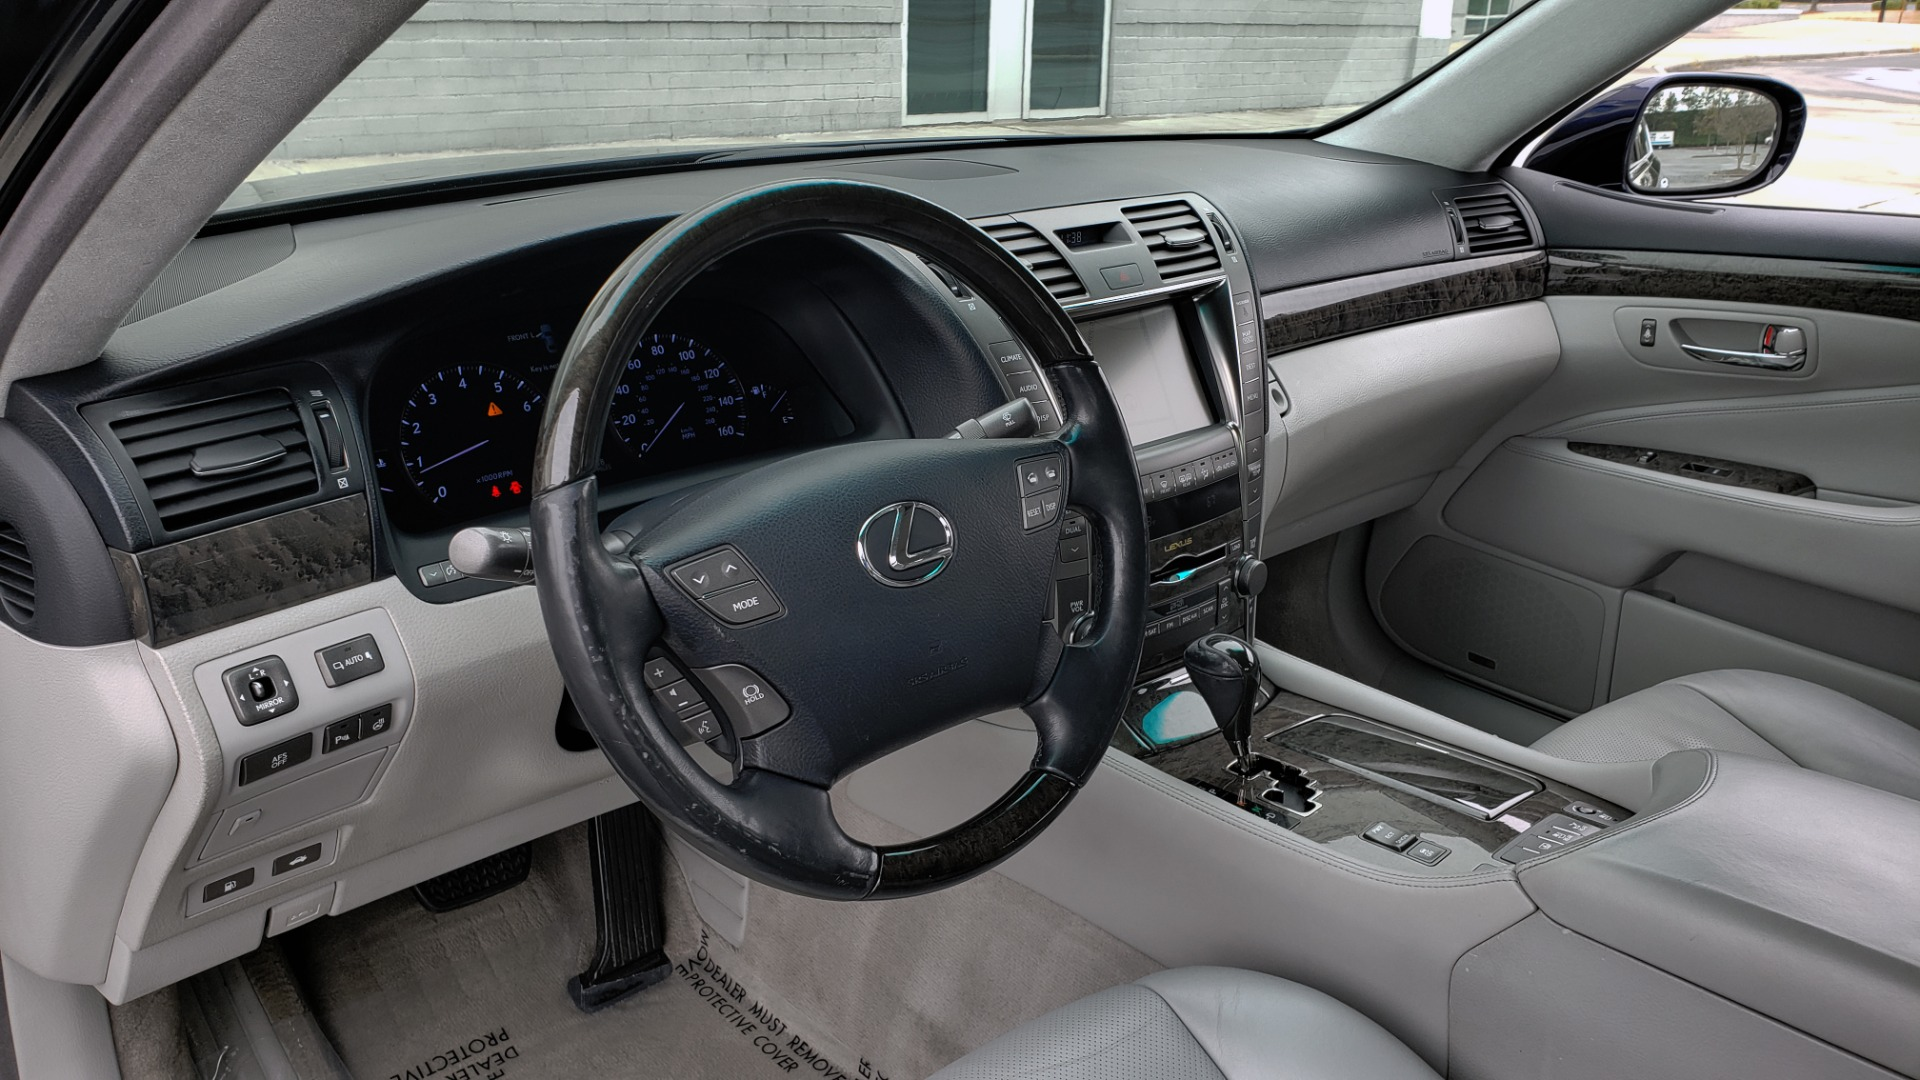 Used 2008 Lexus LS 460 LWB LUXURY SEDAN / MARK LEVINSON / INT PARK ASST / REARVIEW for sale Sold at Formula Imports in Charlotte NC 28227 34